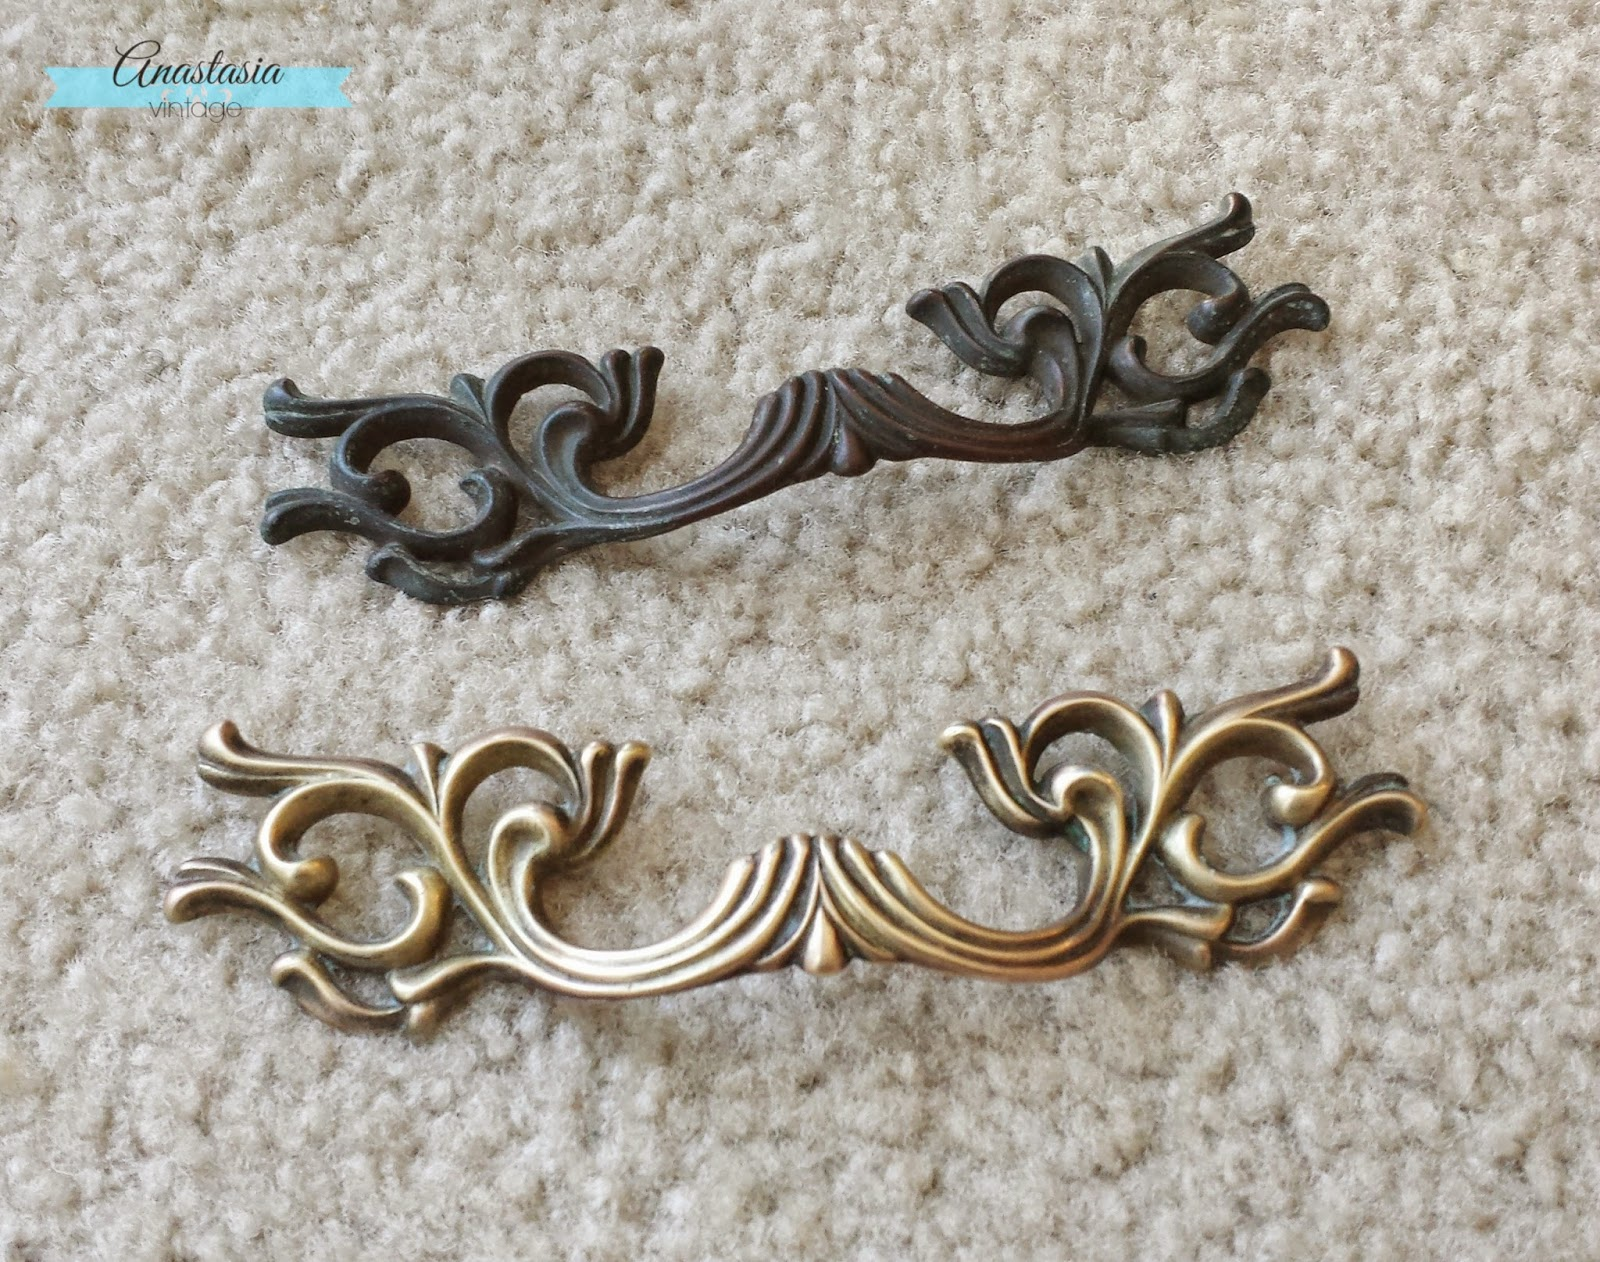 French provincial drawer handles before and after cleaning